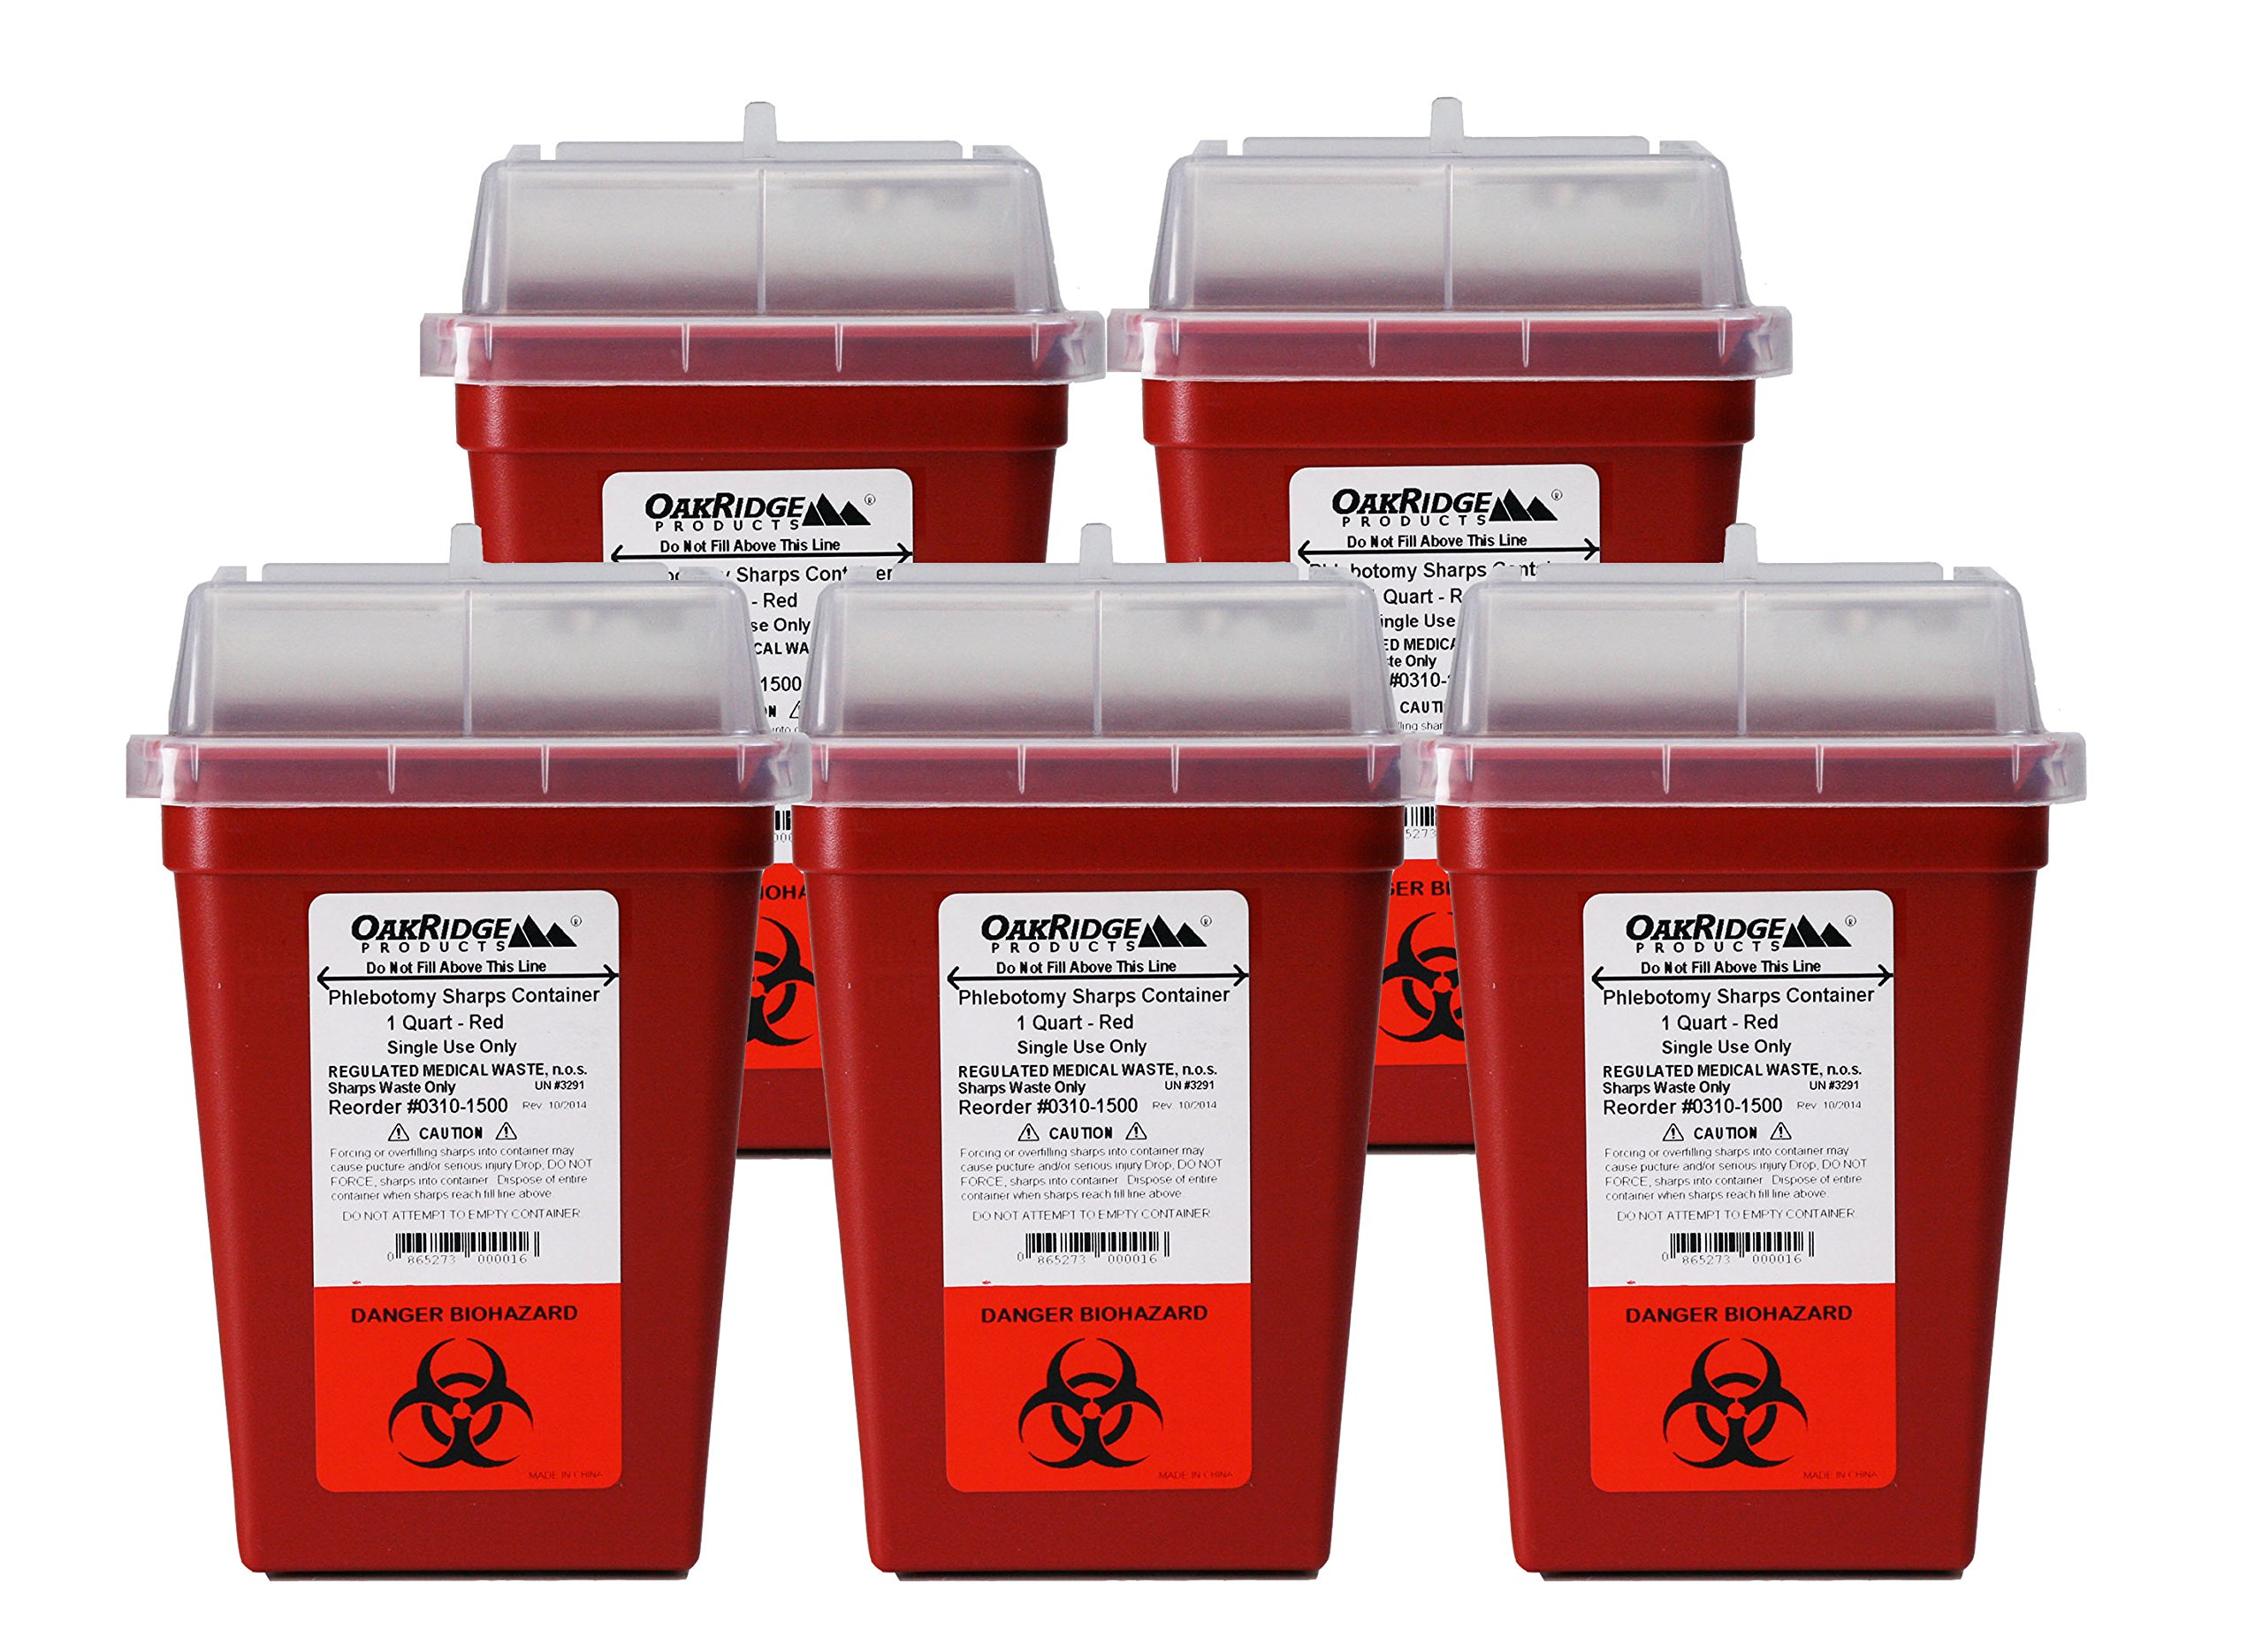 OakRidge Products 1 Quart Size (Pack of 5) Needle and Syringe Disposal Container by OakRidge Products